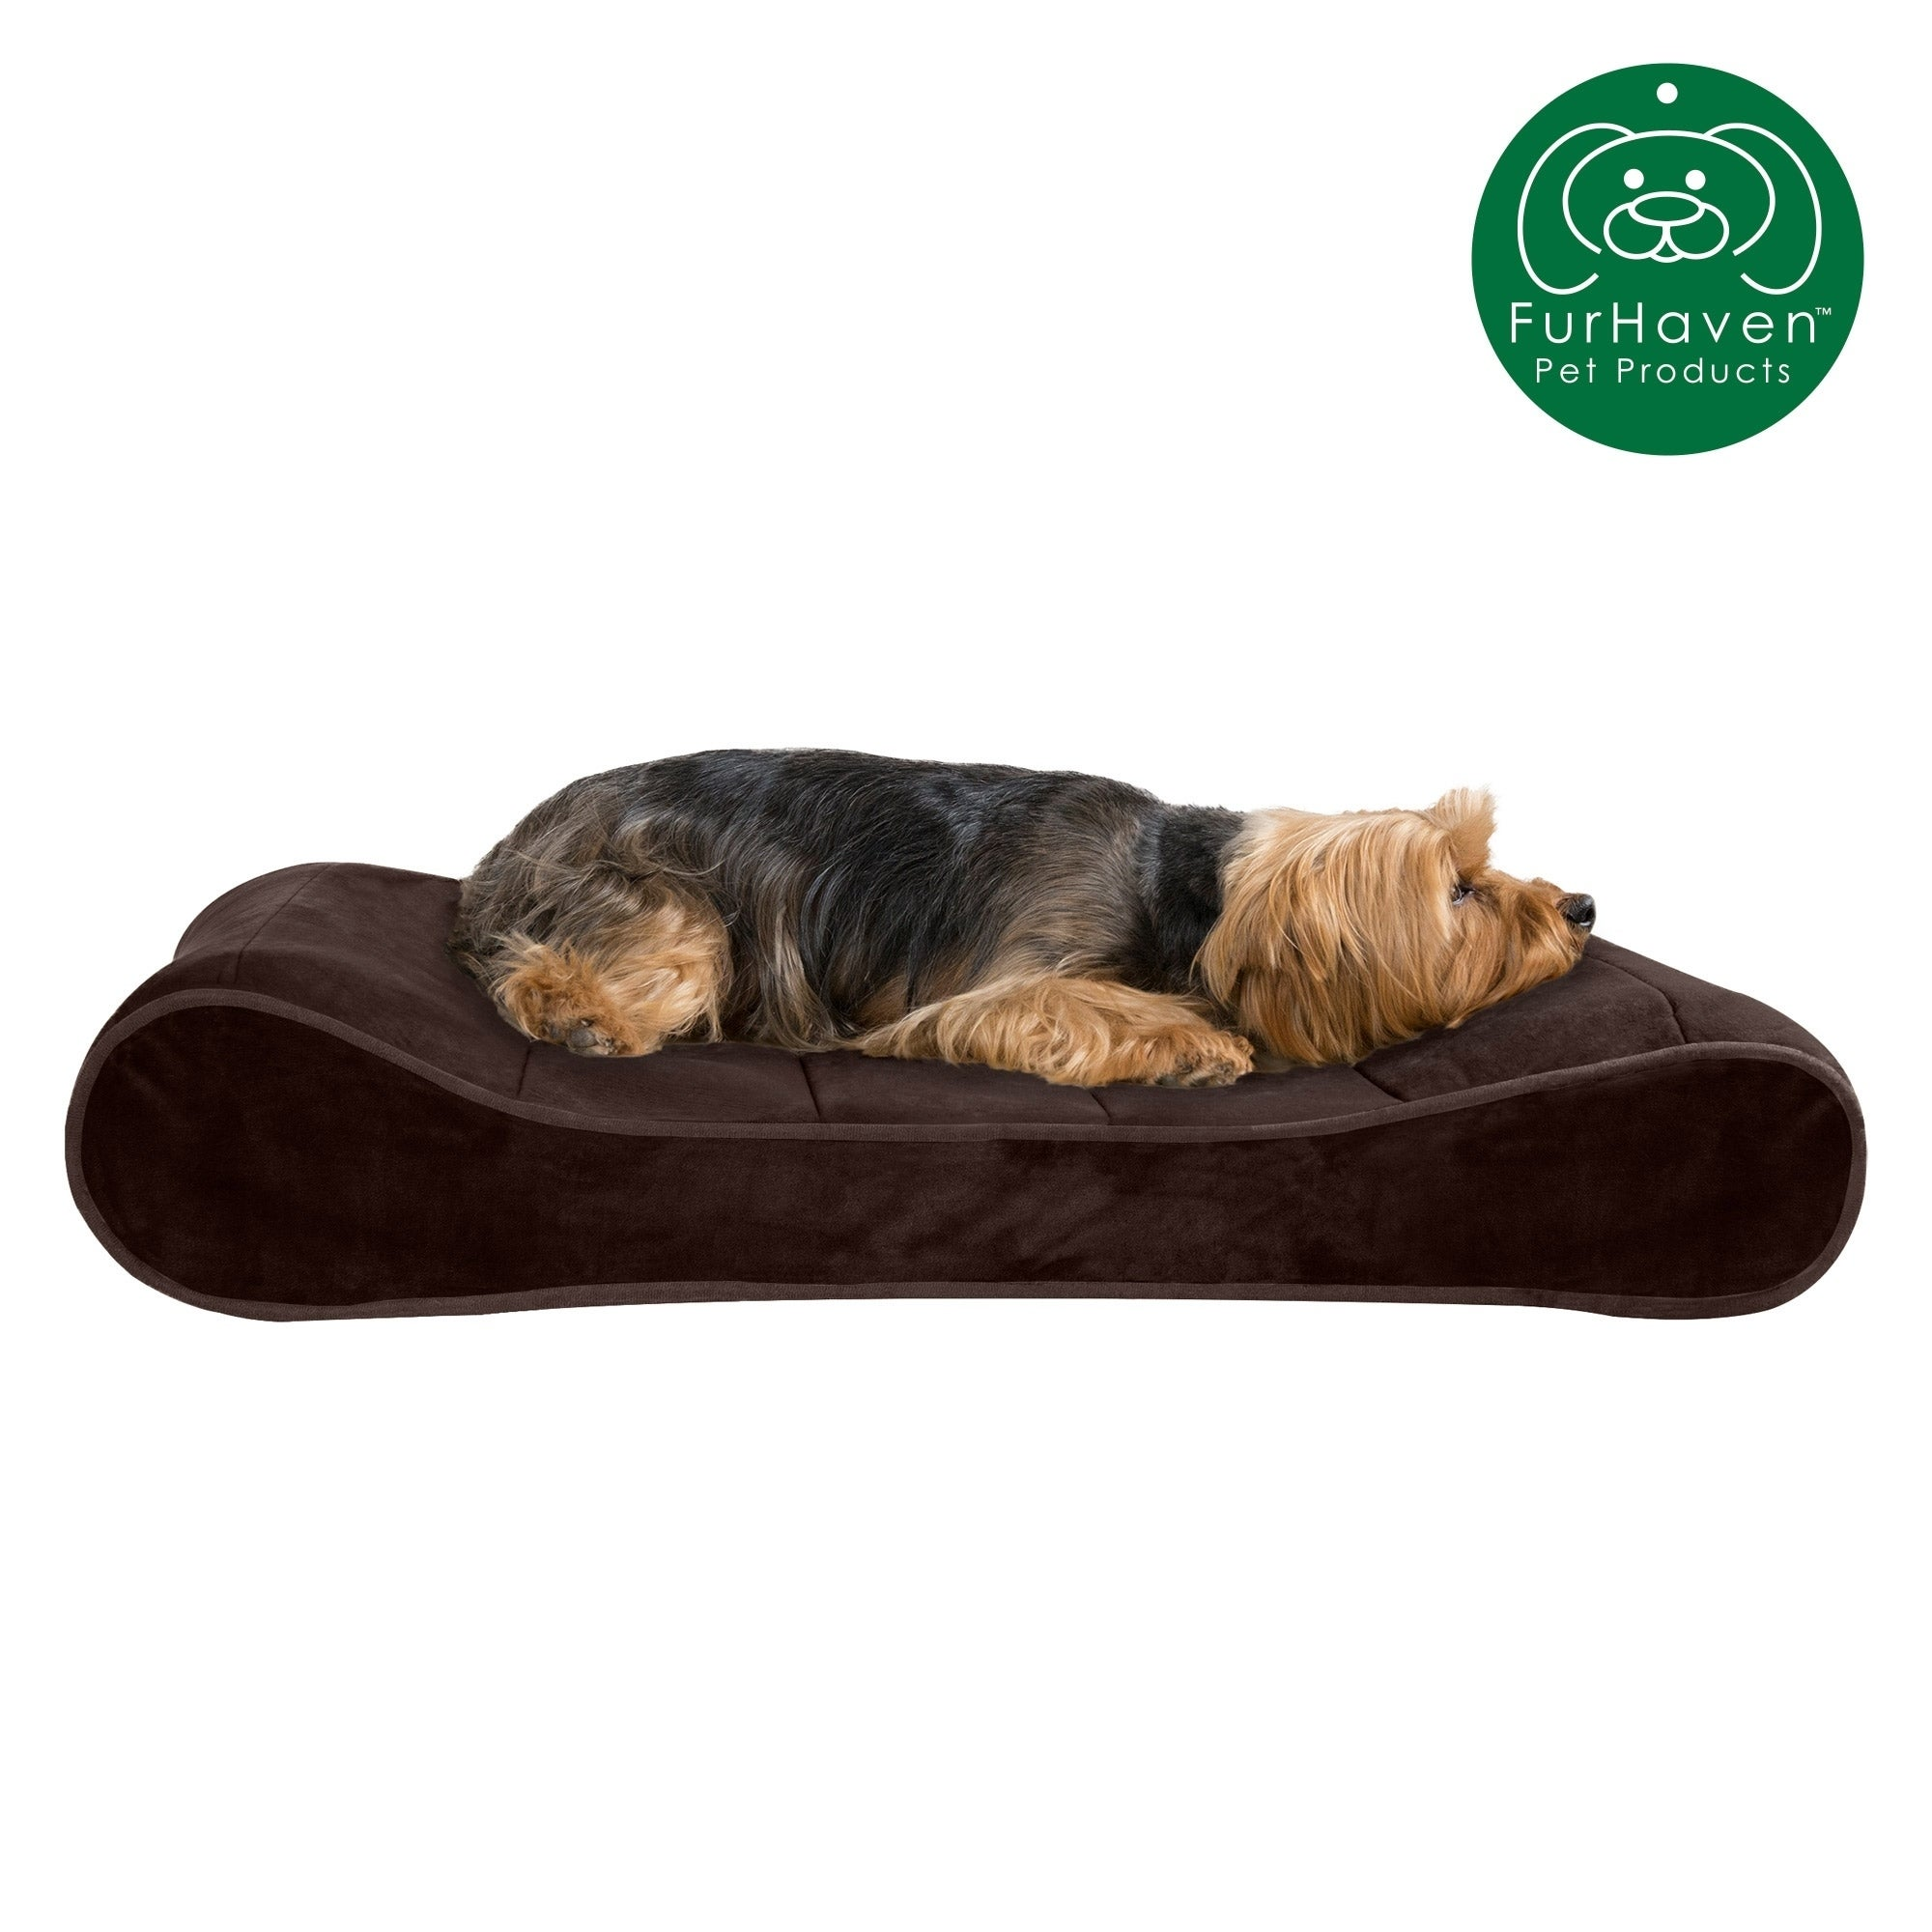 New Furhaven Orthopedic Mattress Pet Bed Large Chocolate for Dogs and Cats